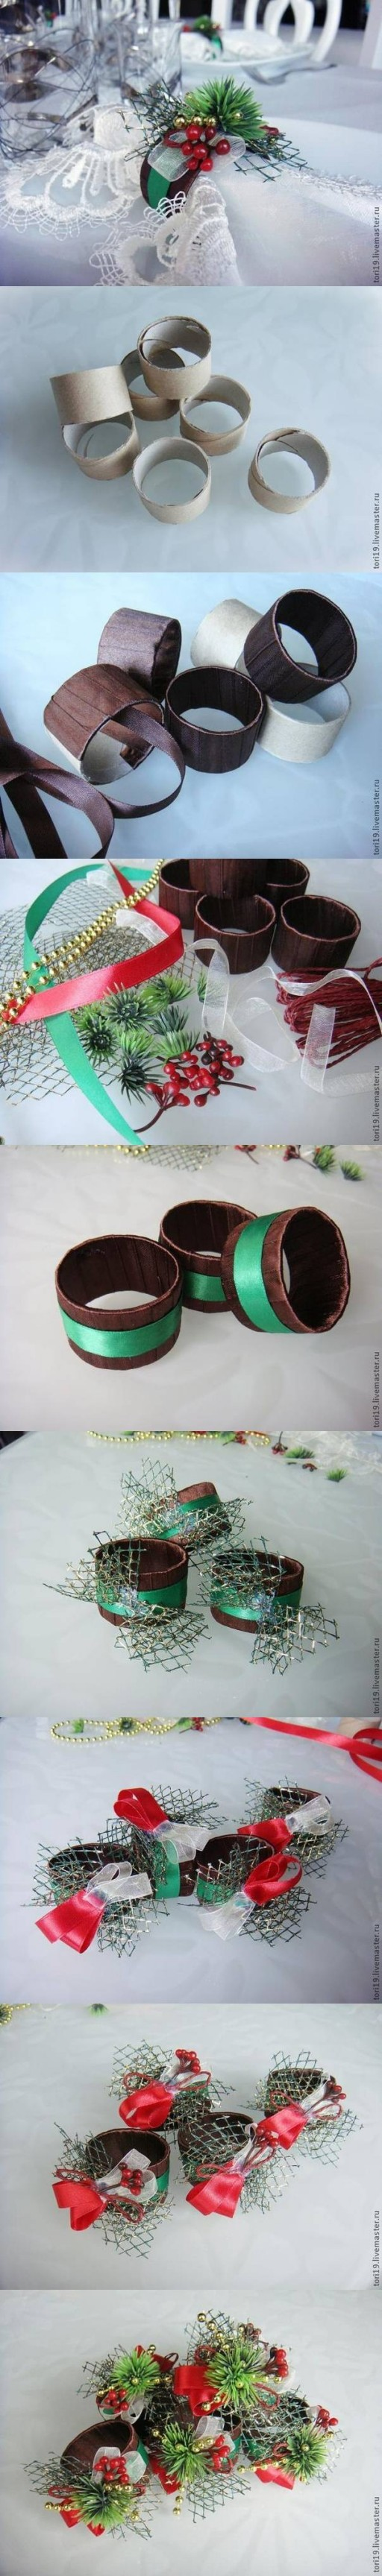 How to make Toilet Paper Roll Custom Napkin Rings DIY tutorial instructions